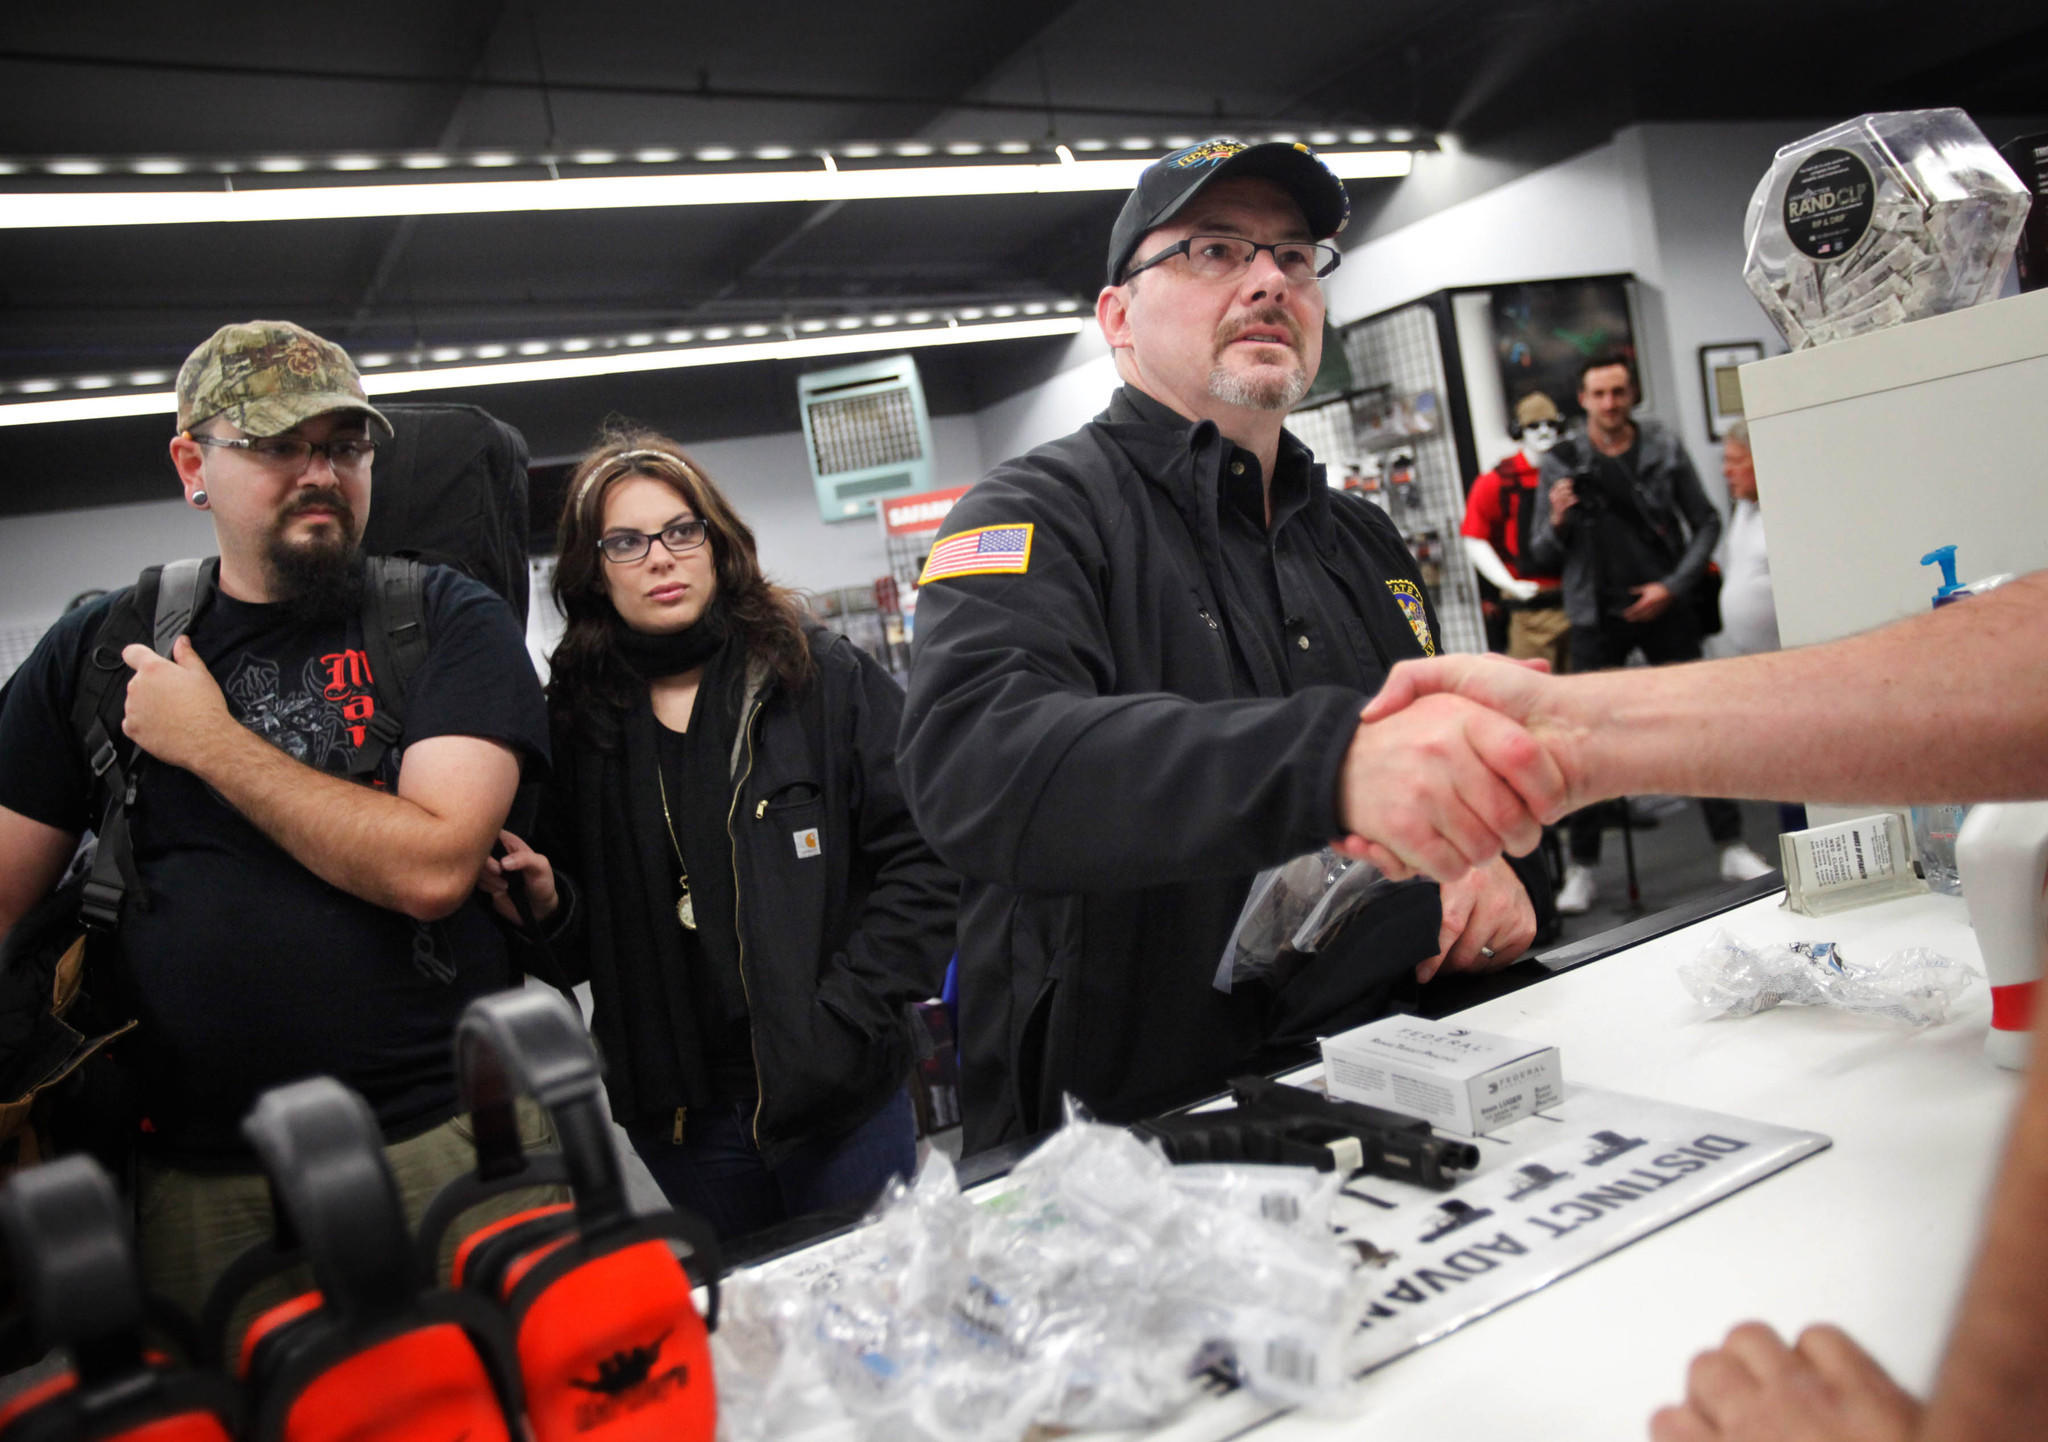 Assemblyman Tim Donnelly, a Republican candidate for governor, is losing his campaign manager, Jennifer Kerns, shortly before his party's convention. Donnelly, an outspoken gun rights advocate, is pictured here shaking hands at a Santa Cruz County gun range in February.